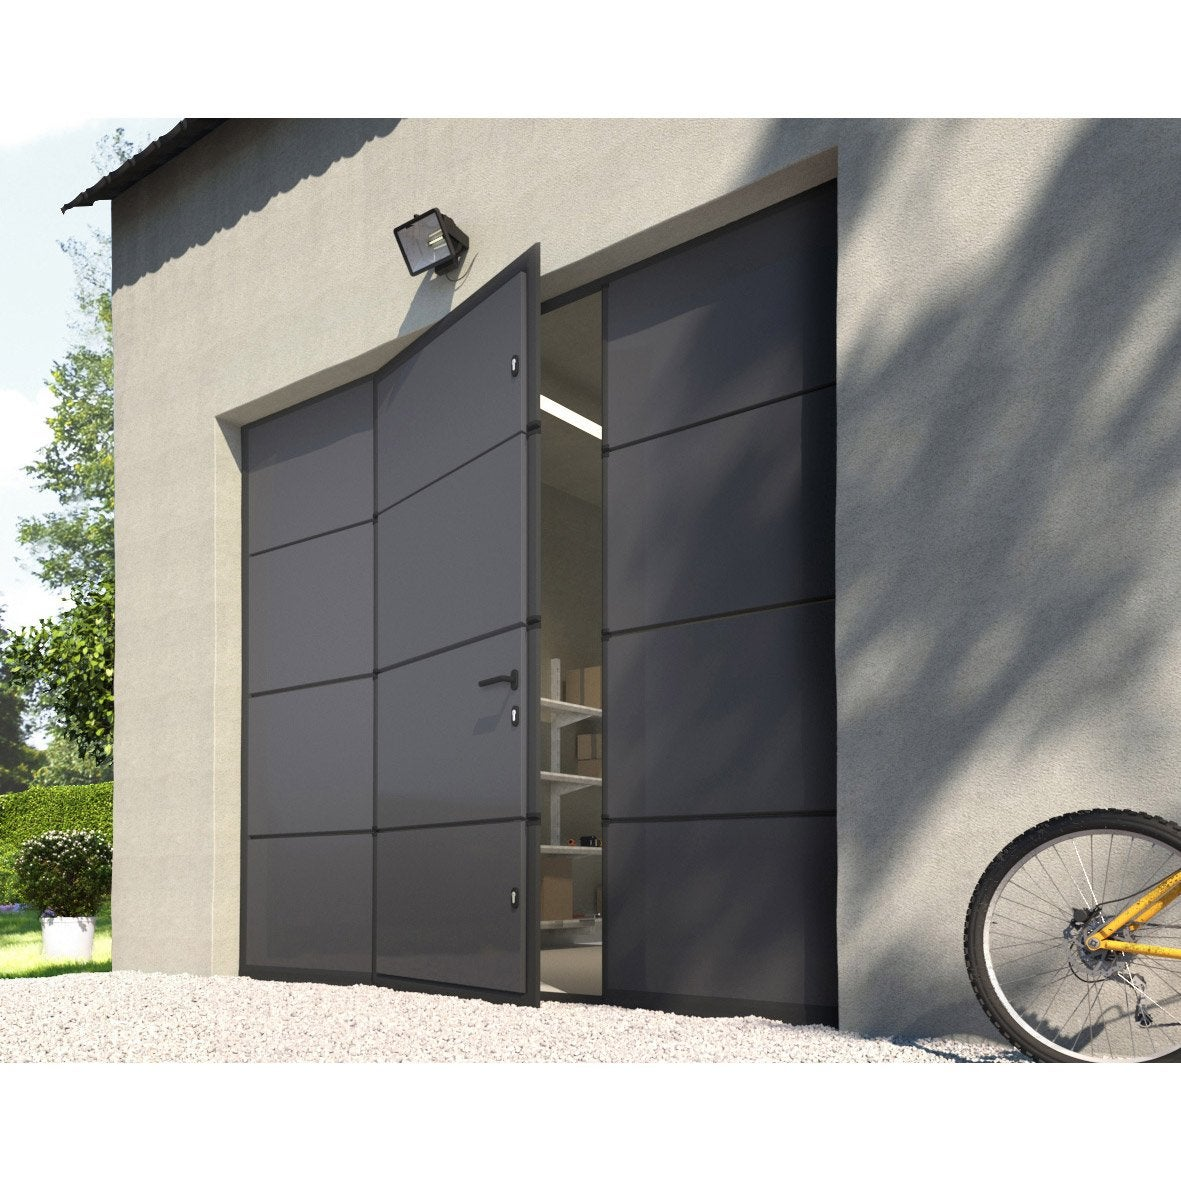 Porte de garage sectionnelle motoris e artens essentiel for Porte garage sectionnelle avec portillon